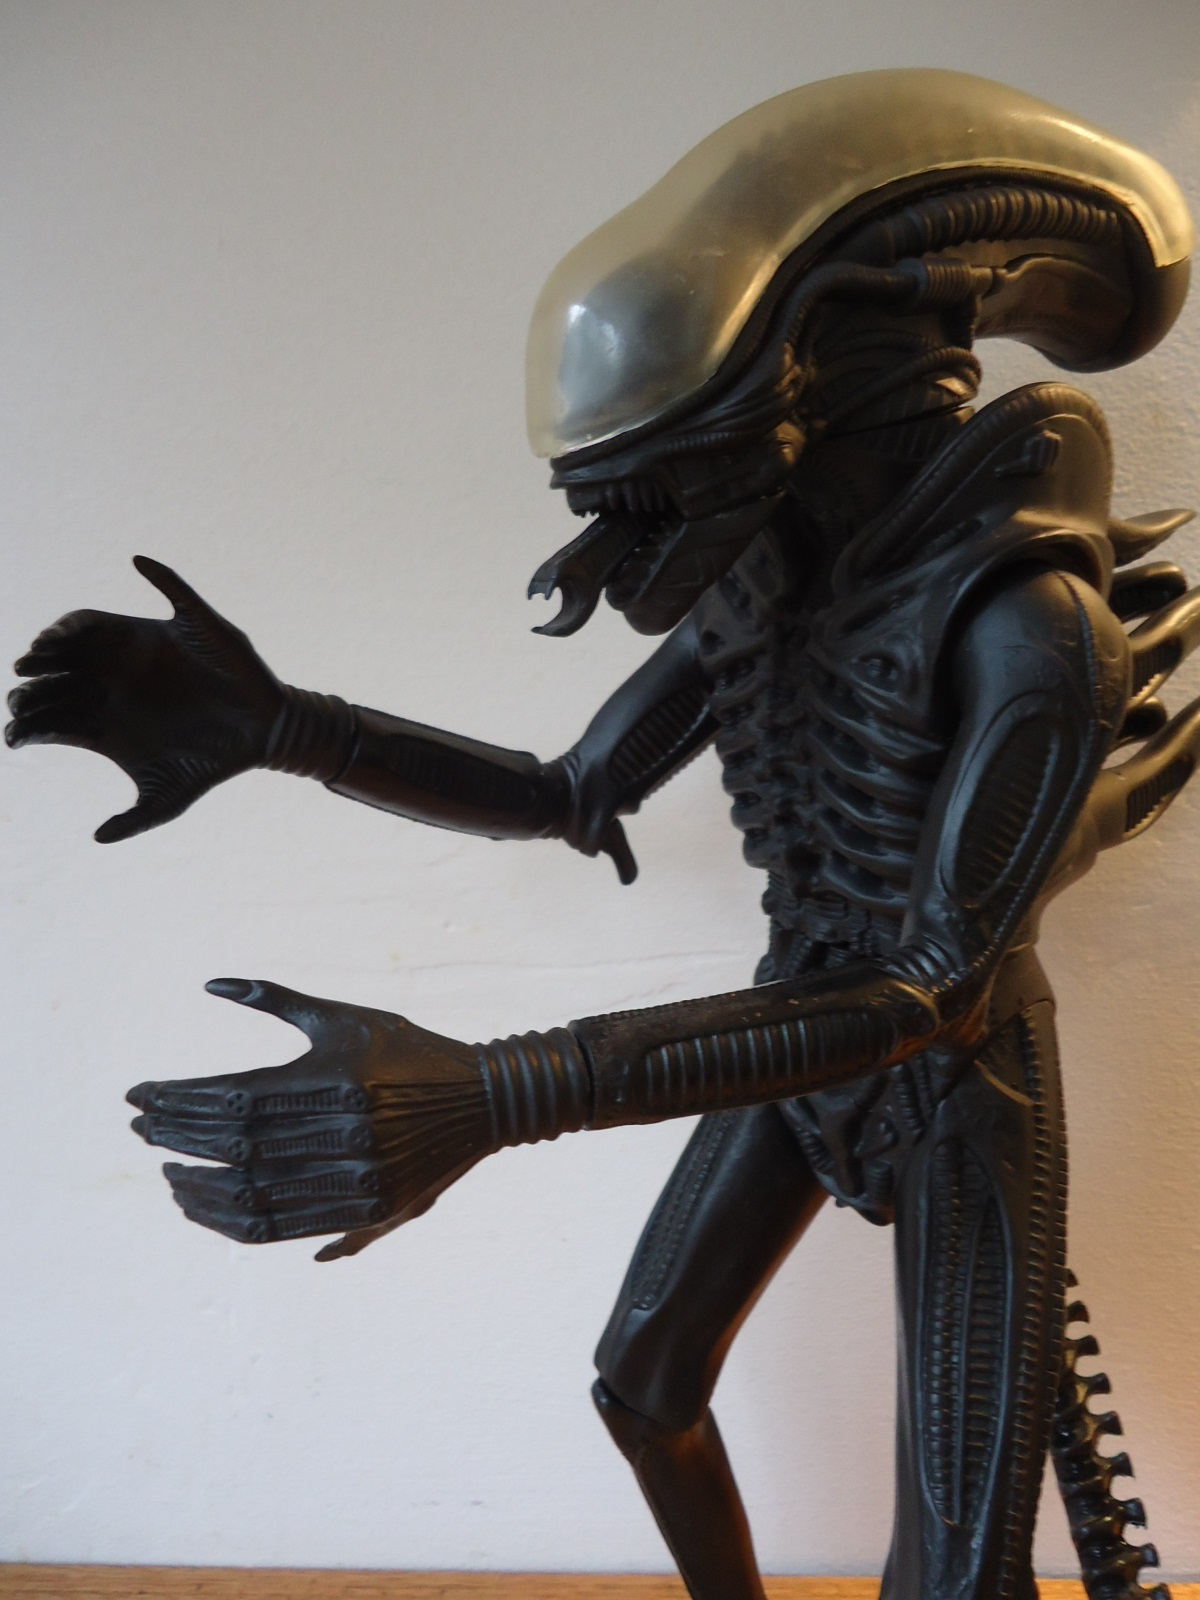 The 1991 Halcyon ALIEN model kit.